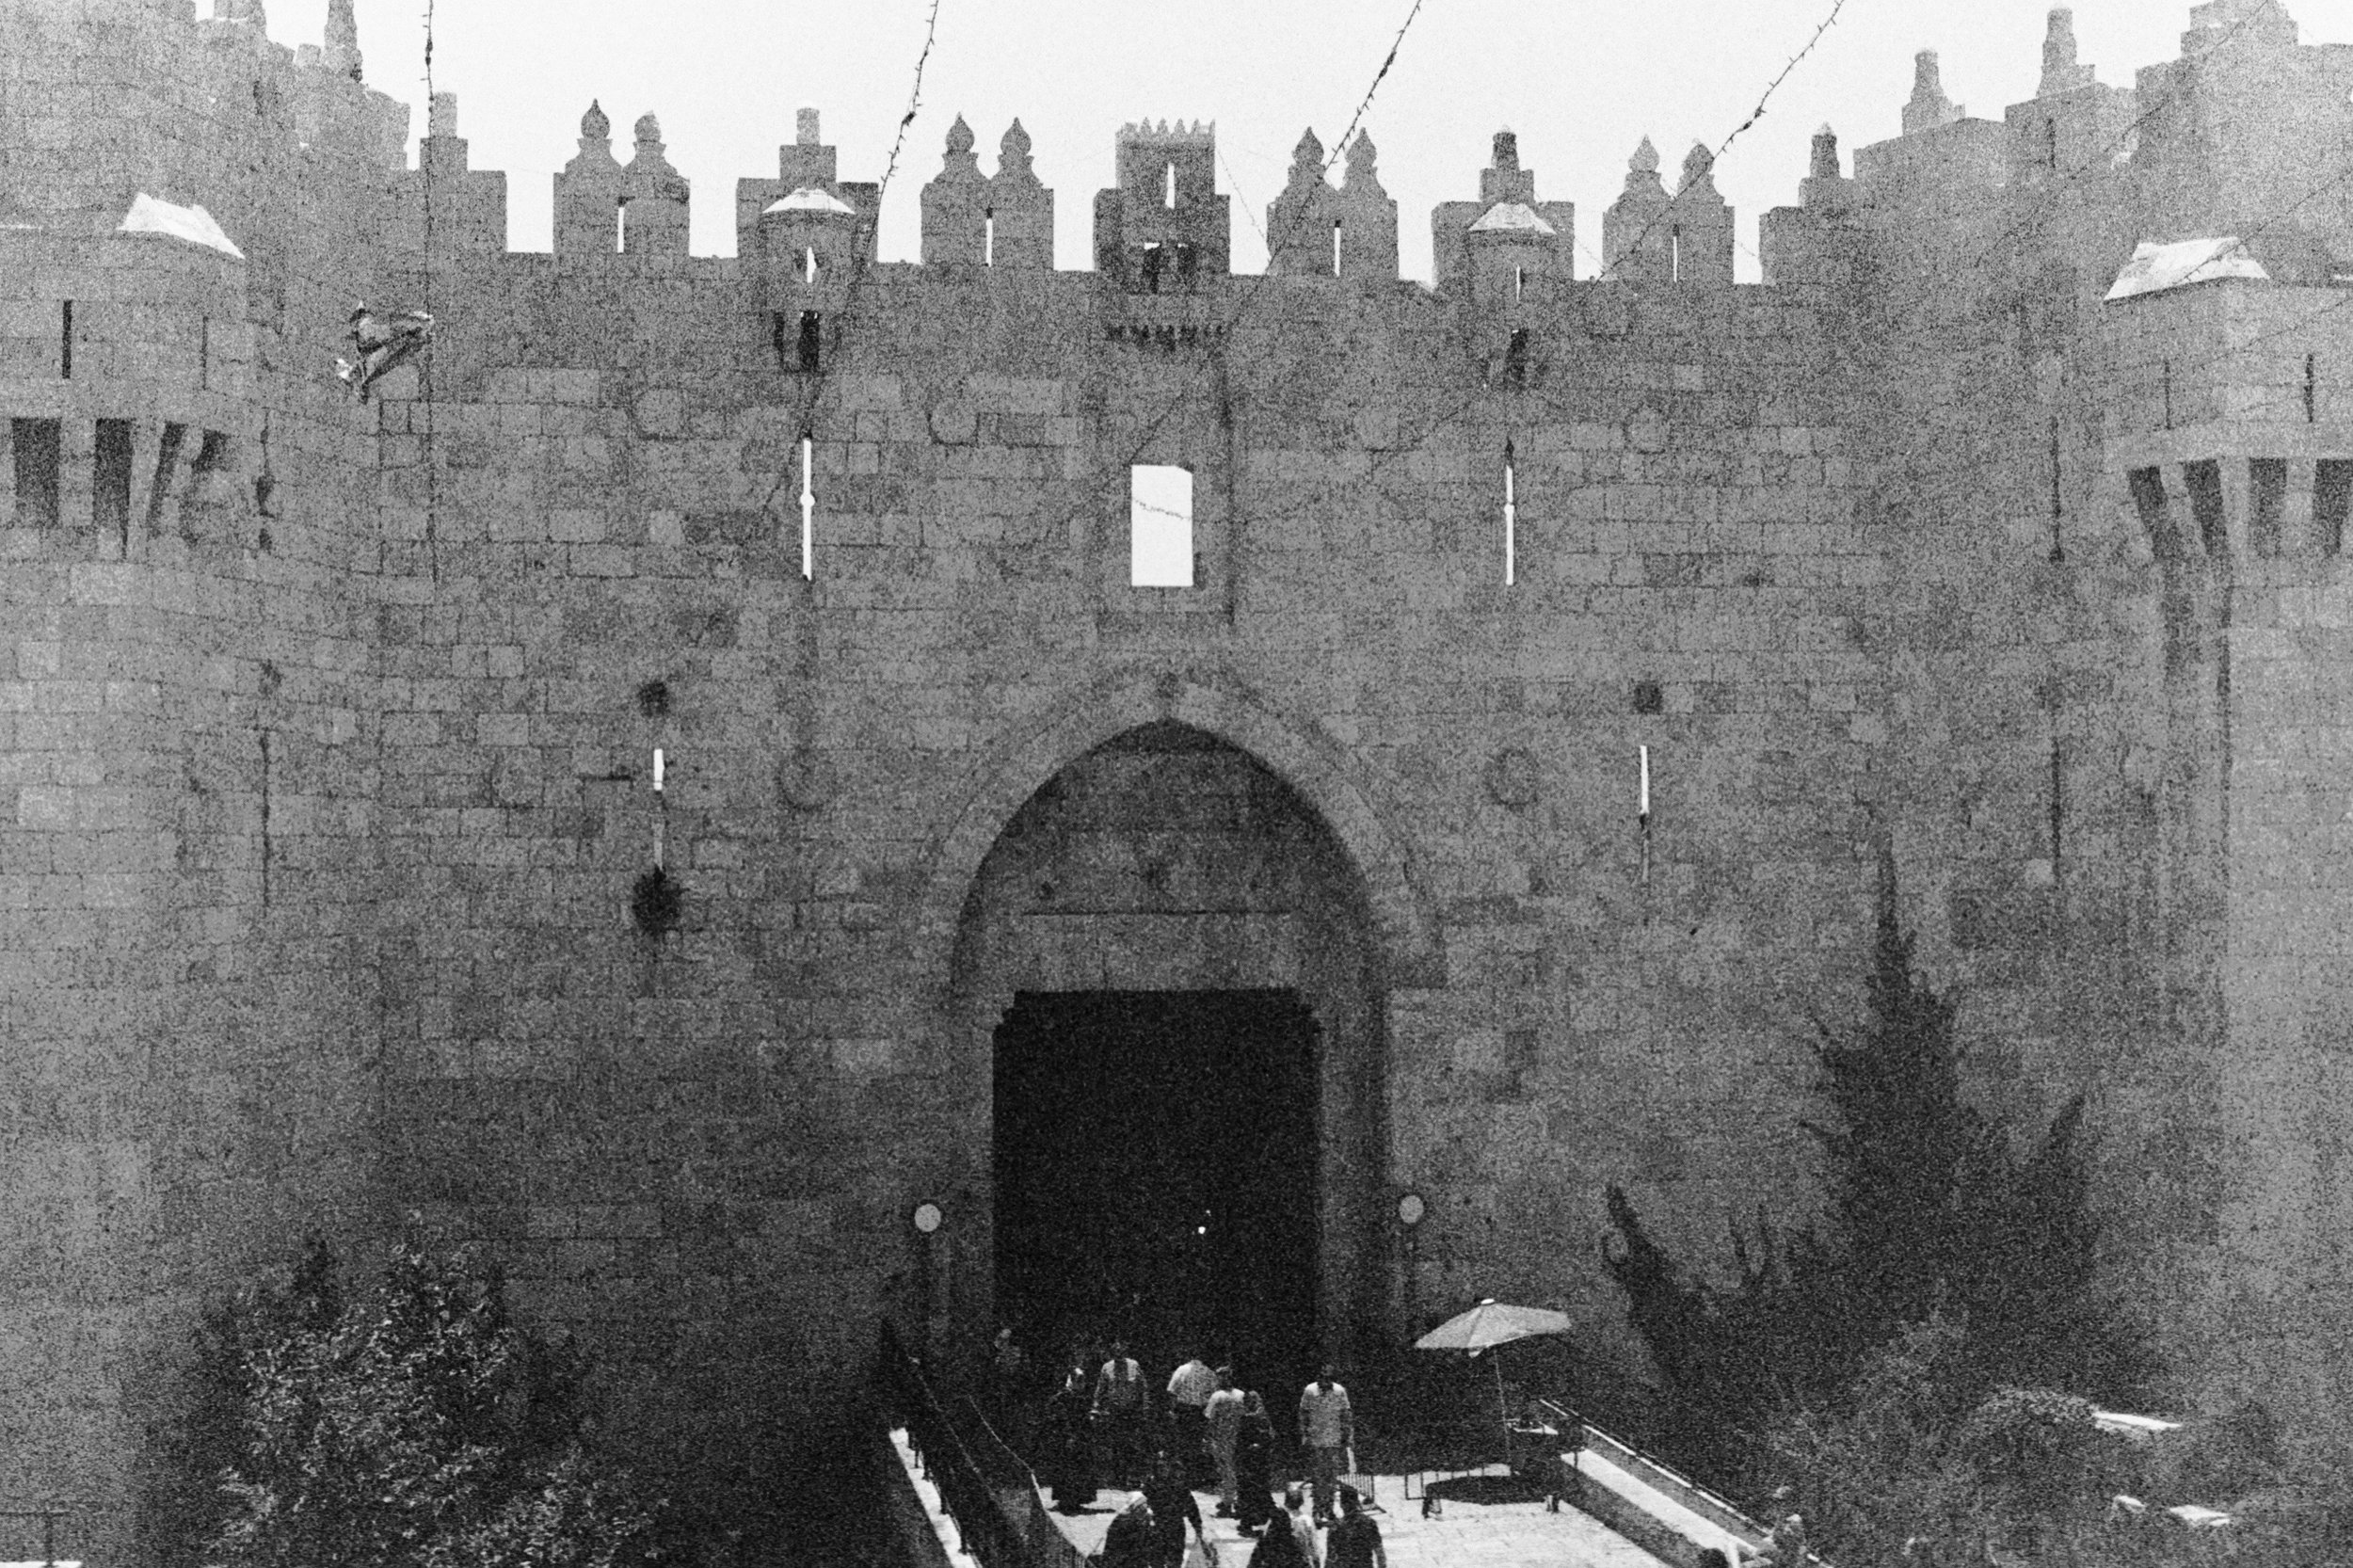 Damascus Gate (باب العامود‎)